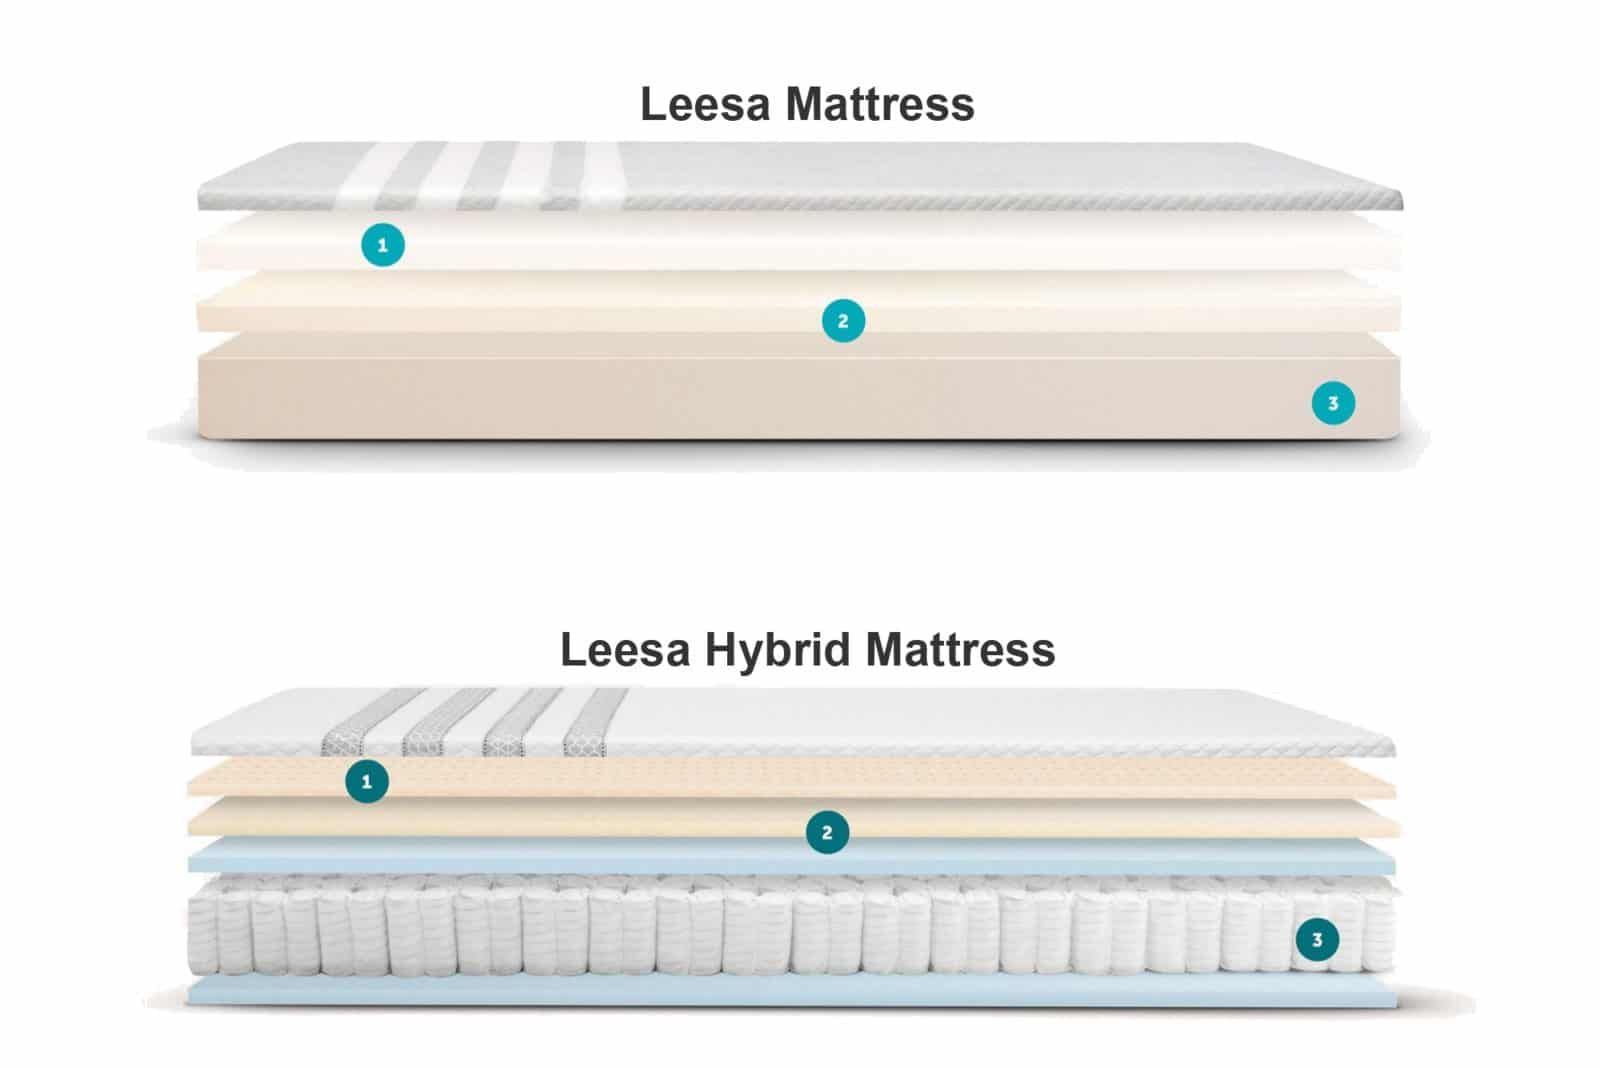 Leesa Vs Casper A Head To Head Comparison Leesa Healthy Mattress Mattress Cleaning